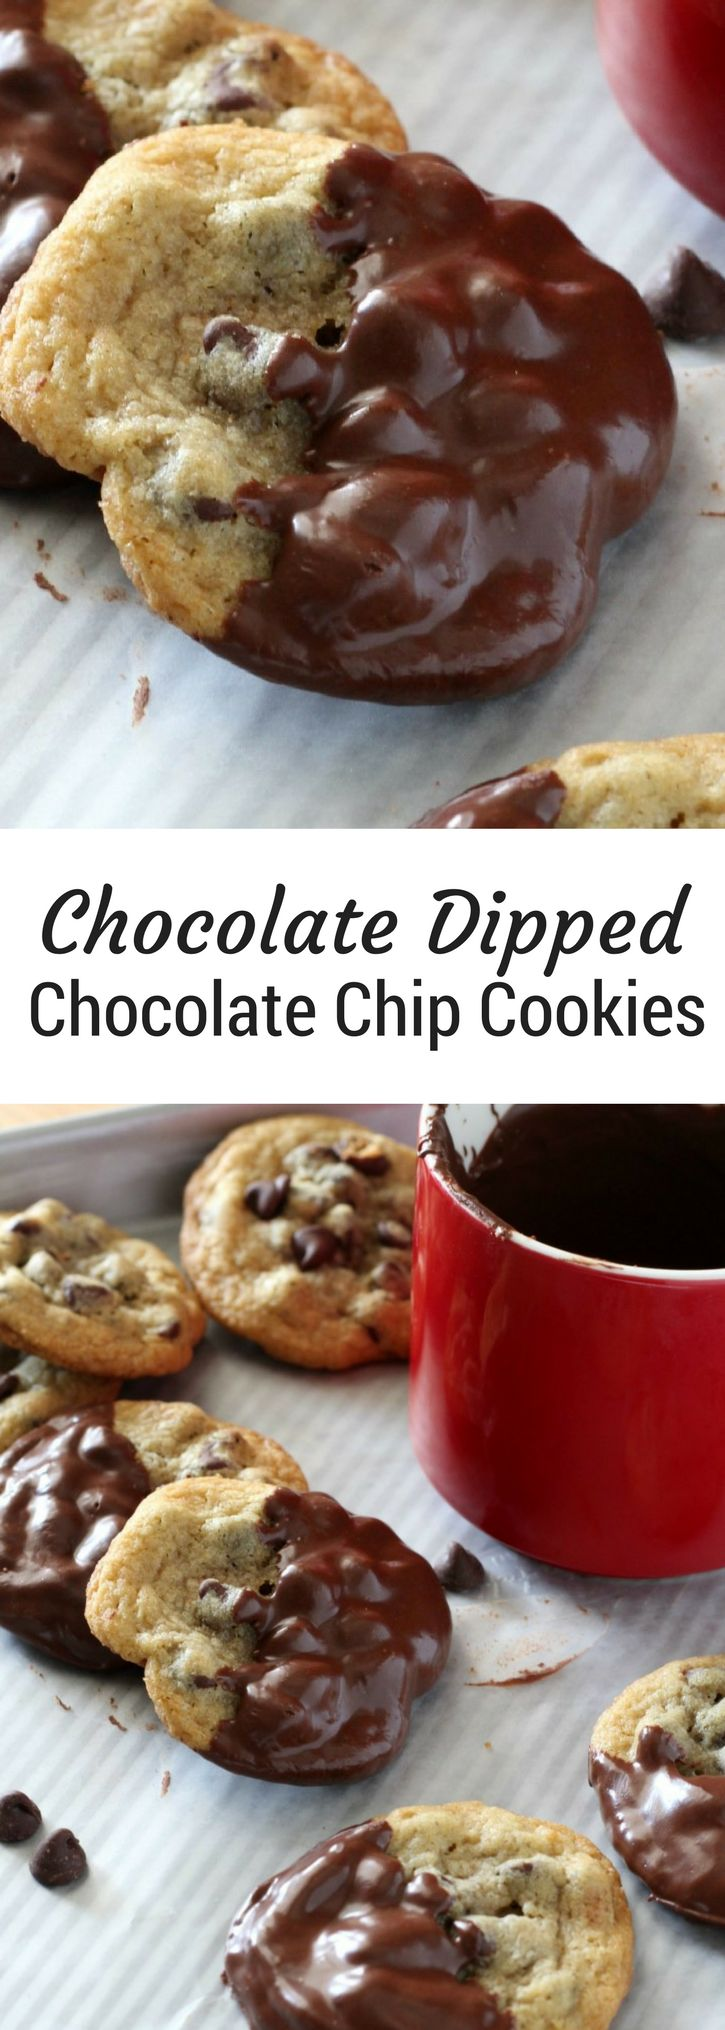 Traditional chocolate chip cookies dipped in chocolate. A fun variation on everyone's favorite cookie, perfect with glass of milk. I've been wanting to try chocolate dipped chocolate chip cookies for awhile now. I saw them at Wegmans (favorite East Coast grocery store if your not familiar!) awhile back and thought they looked fun, a more...Read More »